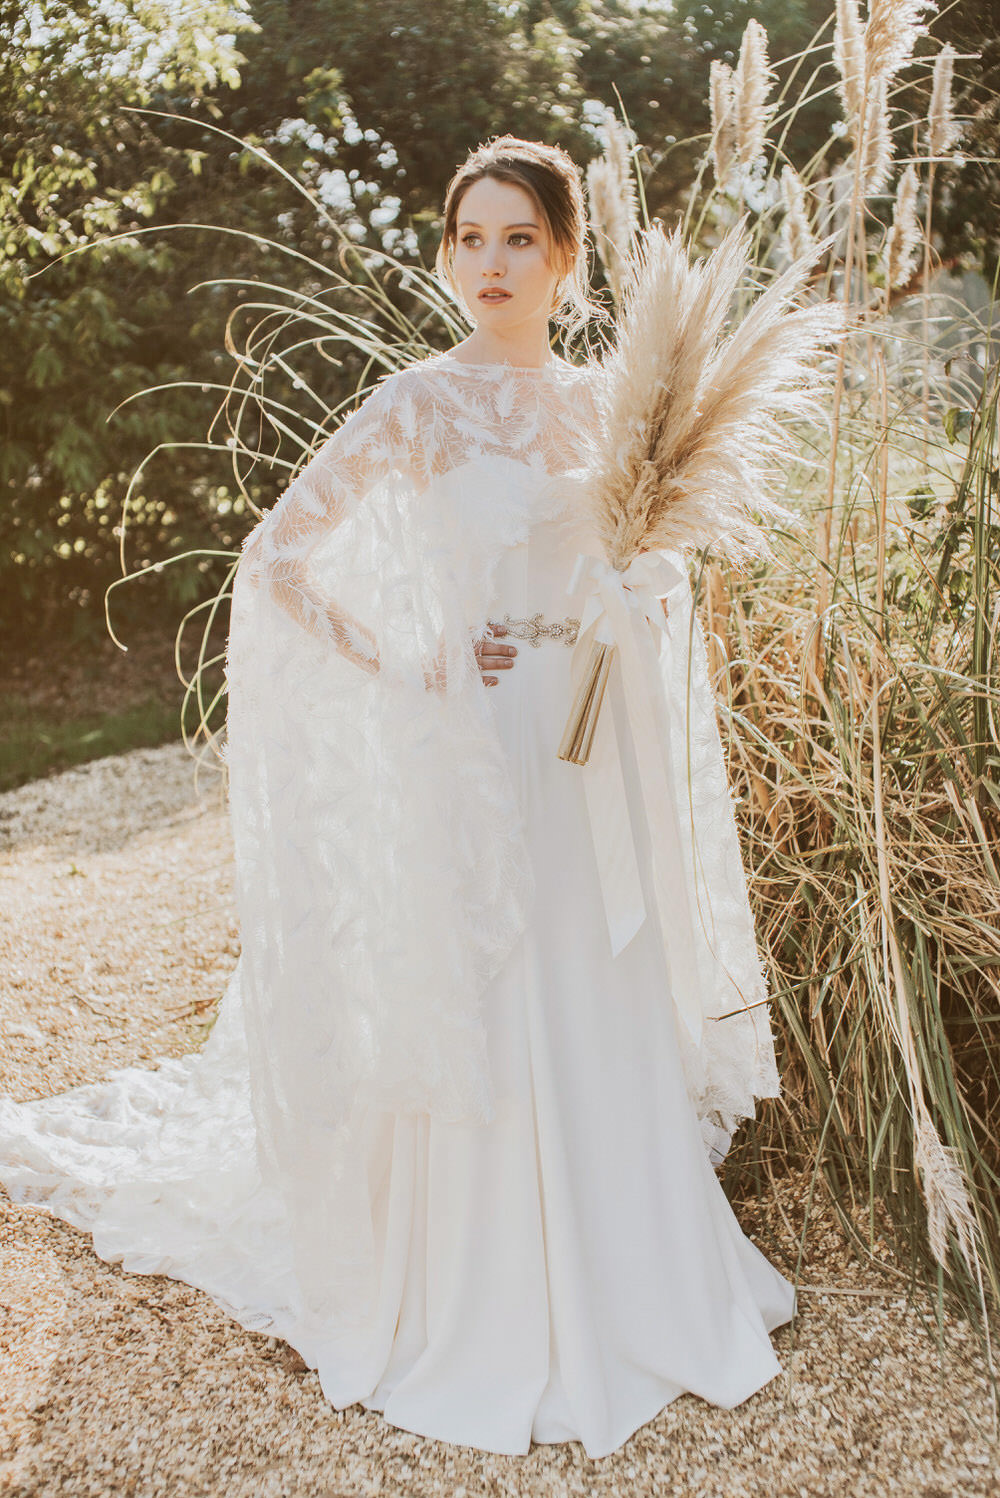 Green Gold Wedding Ideas Samantha Davis Photography Bride Bridal Dress Gown Feather Embroidered Cape Willowby by Watters